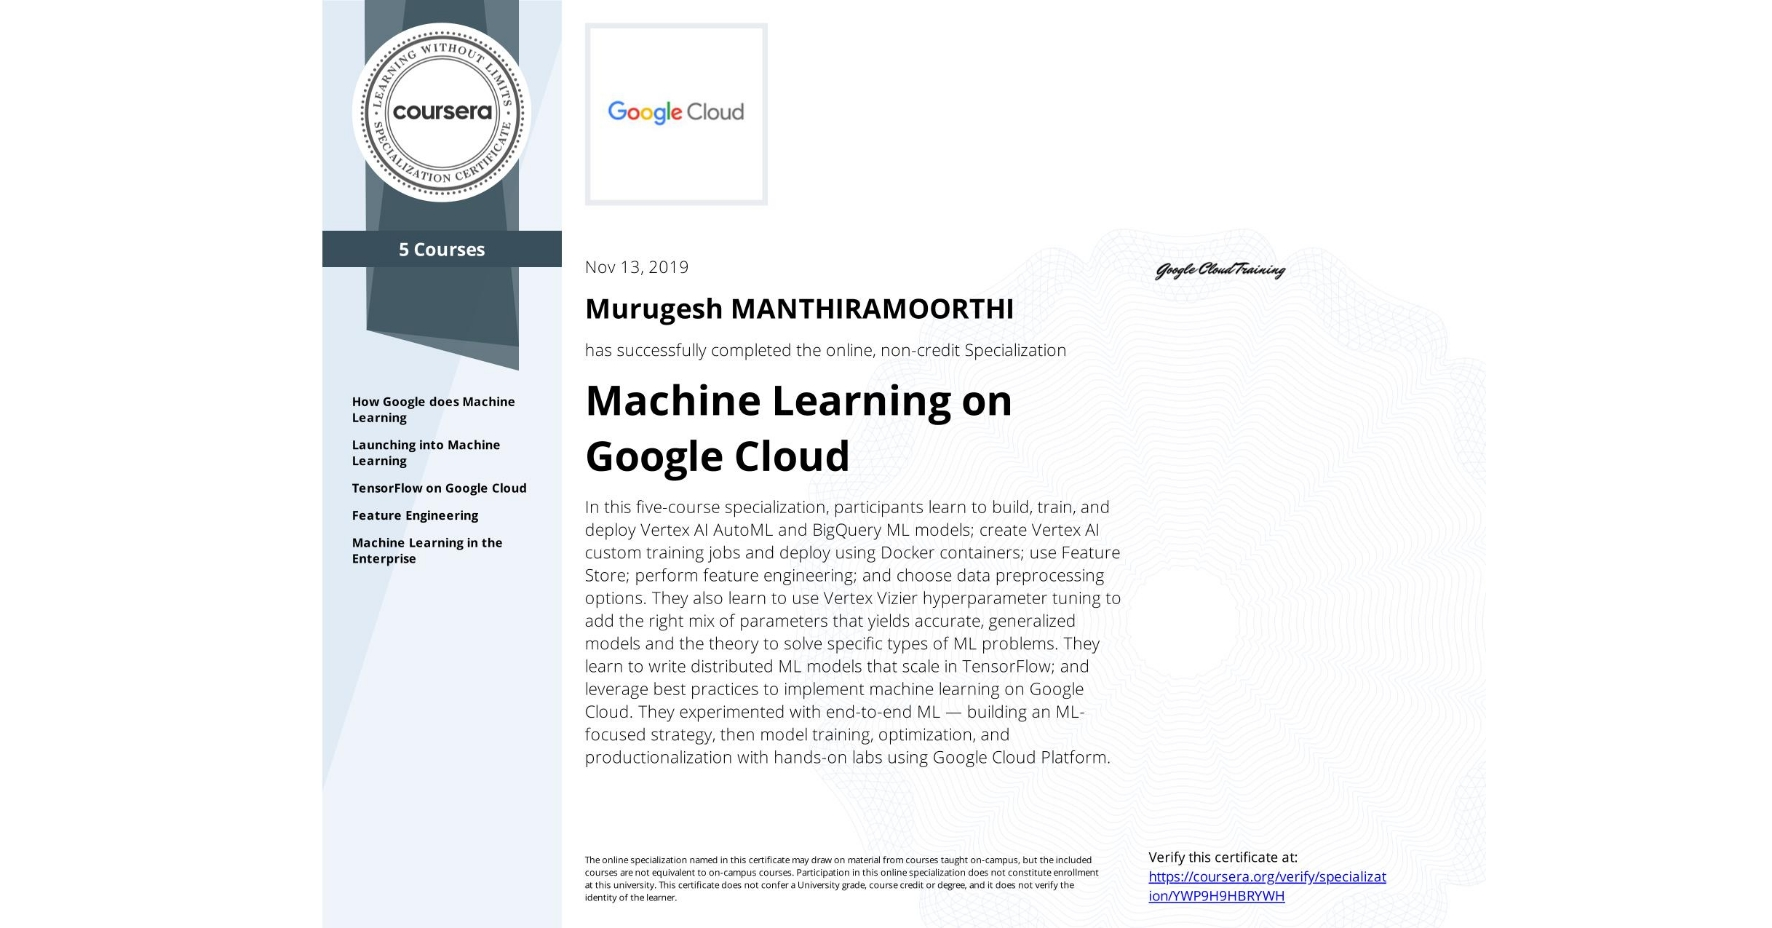 View certificate for Murugesh Manthiramoorthi, Machine Learning with TensorFlow on Google Cloud, offered through Coursera. This five-course online specialization teaches course participants how to write distributed machine learning models that scale in Tensorflow, scale out the training of those models. and offer high-performance predictions. Also featured is the conversion of raw data to features in a way that allows ML to learn important characteristics from the data and bring human insight to bear on the problem. It also teaches how to incorporate the right mix of parameters that yields accurate, generalized models and knowledge of the theory to solve specific types of ML problems. Course participants experimented with end-to-end ML, starting from building an ML-focused strategy and progressing into model training, optimization, and productionalization with hands-on labs using Google Cloud Platform.